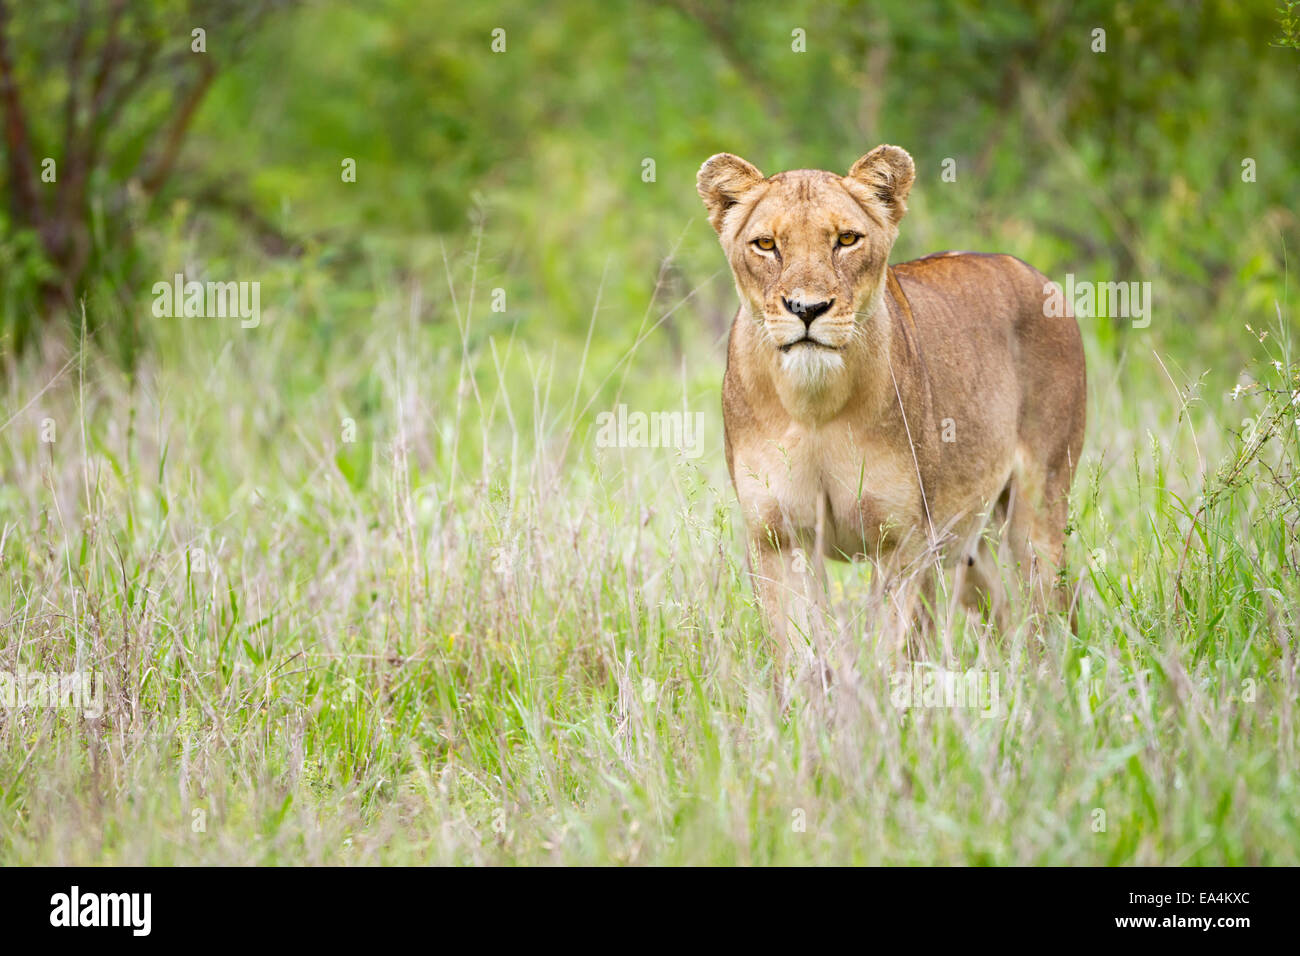 Lioness on the prowl dating